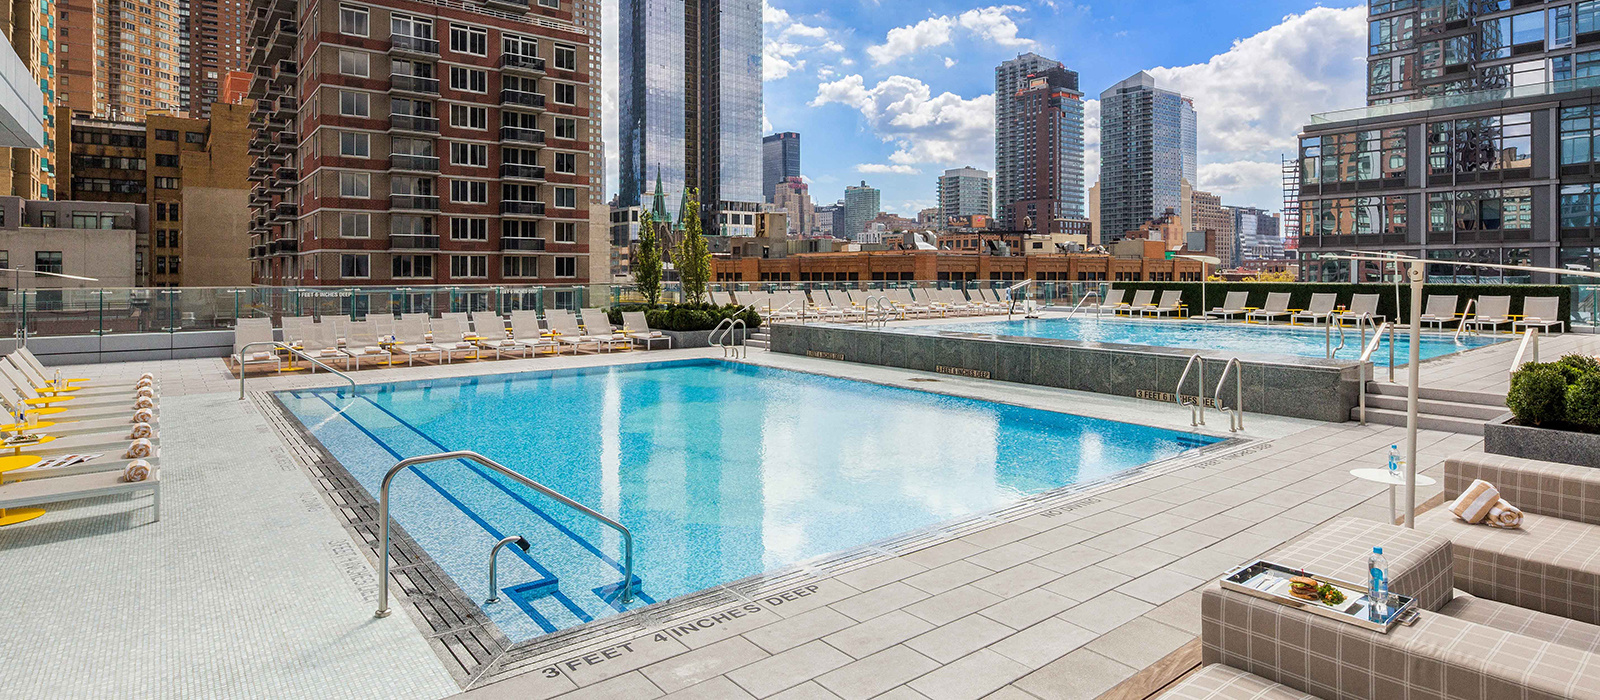 Luxury Apartments Pool. Live in sophisticated modern style Sky NYC Luxury Apartment Rentals